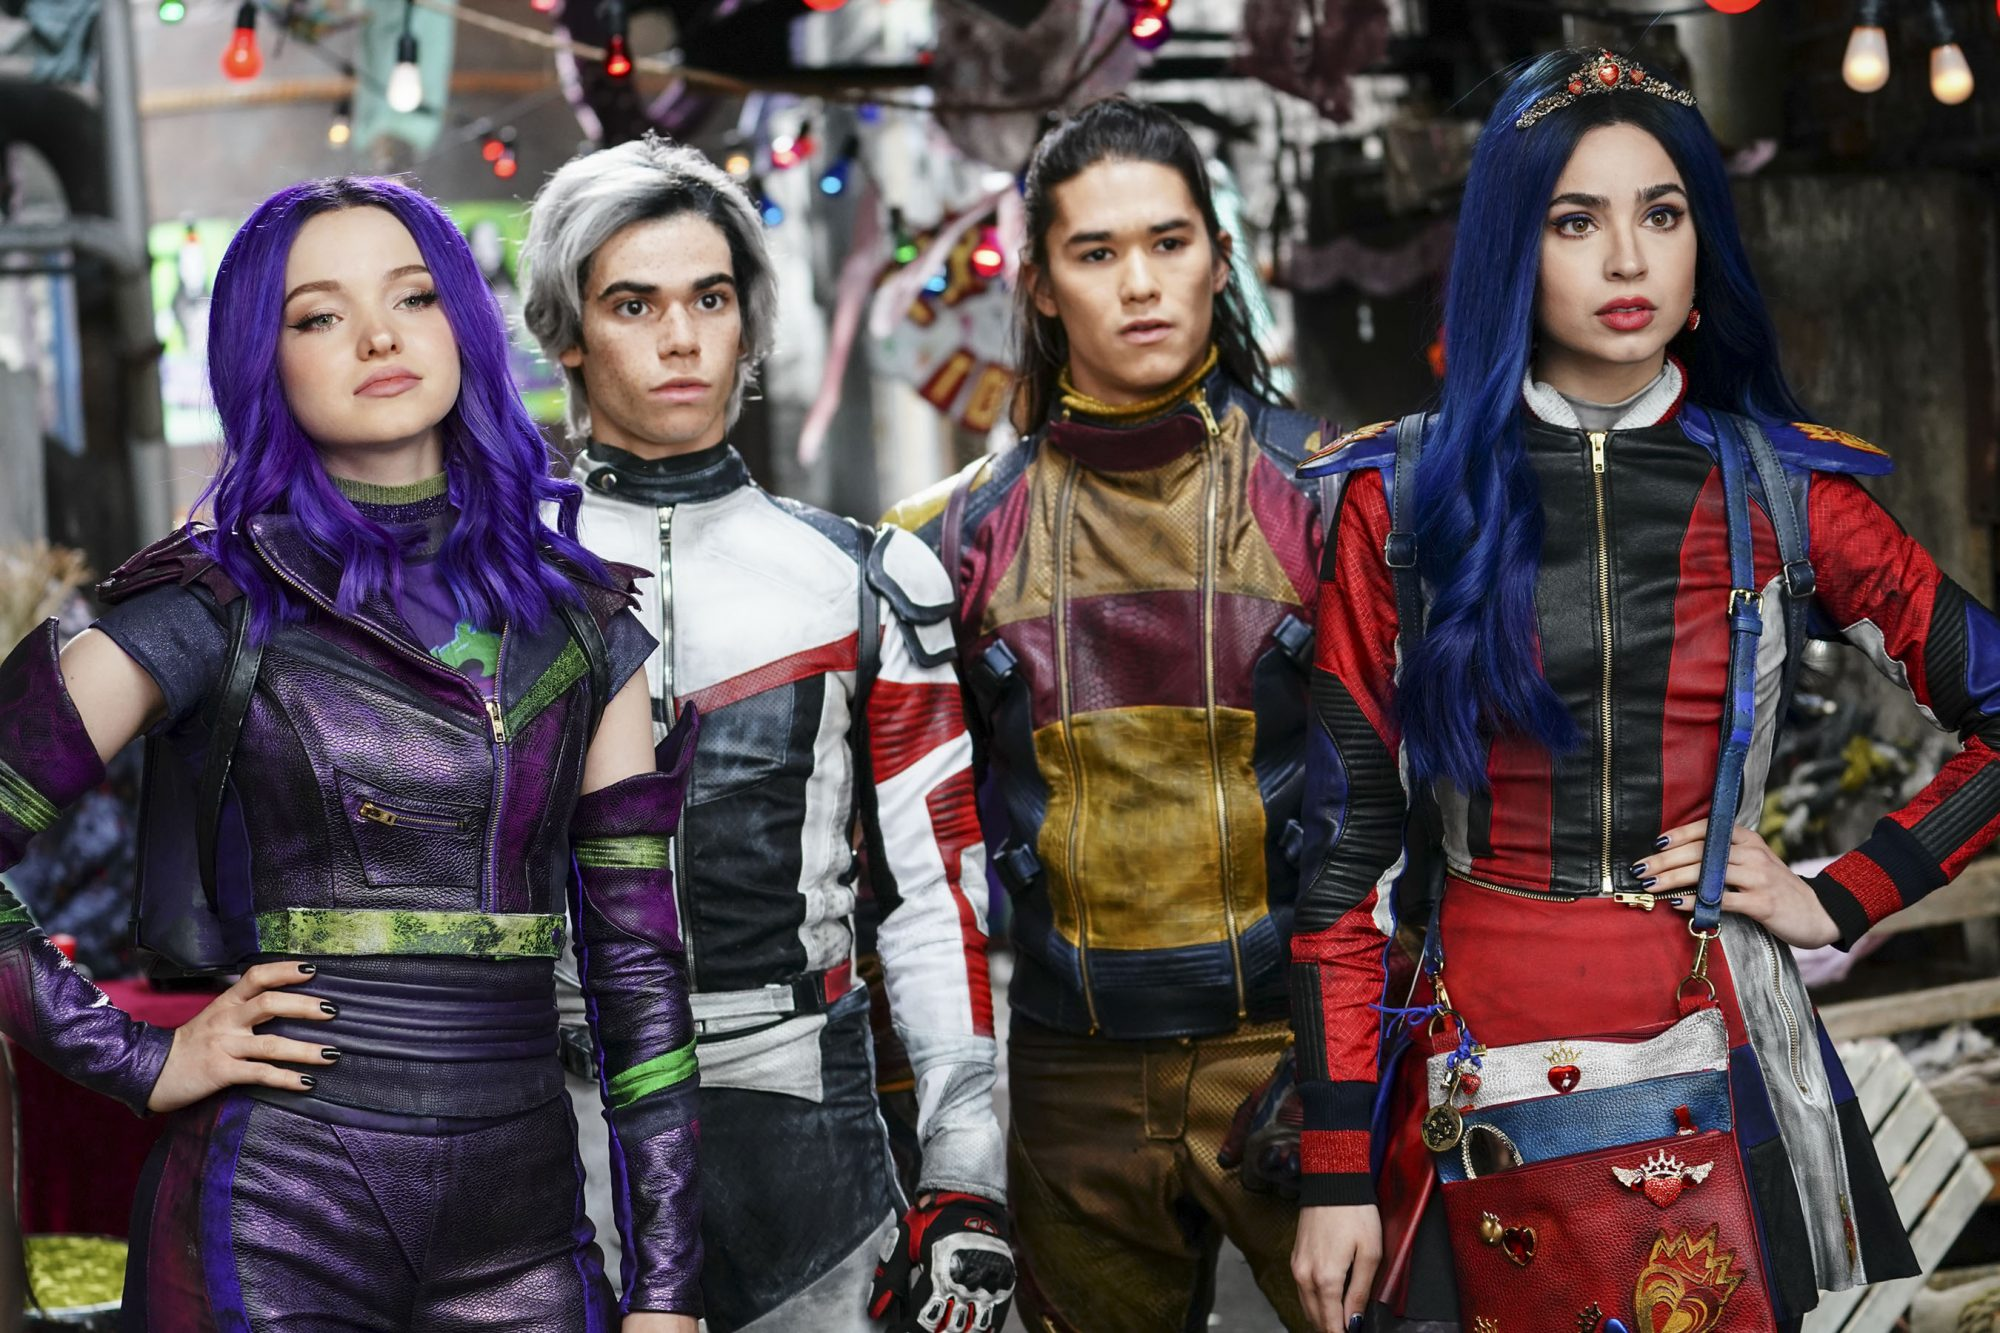 """DESCENDANTS 3 - In this highly anticipated trequel about the sons and daughters of Disney's most infamous villains, Mal and the villain kids (VKs) must save Auradon from an evil threat. """"Descendants 3"""" will debut summer 2019 on Disney Channel. (Disney Channel/David Bukach) DOVE CAMERON, CAMERON BOYCE, BOOBOO STEWART, SOFIA ARSON"""